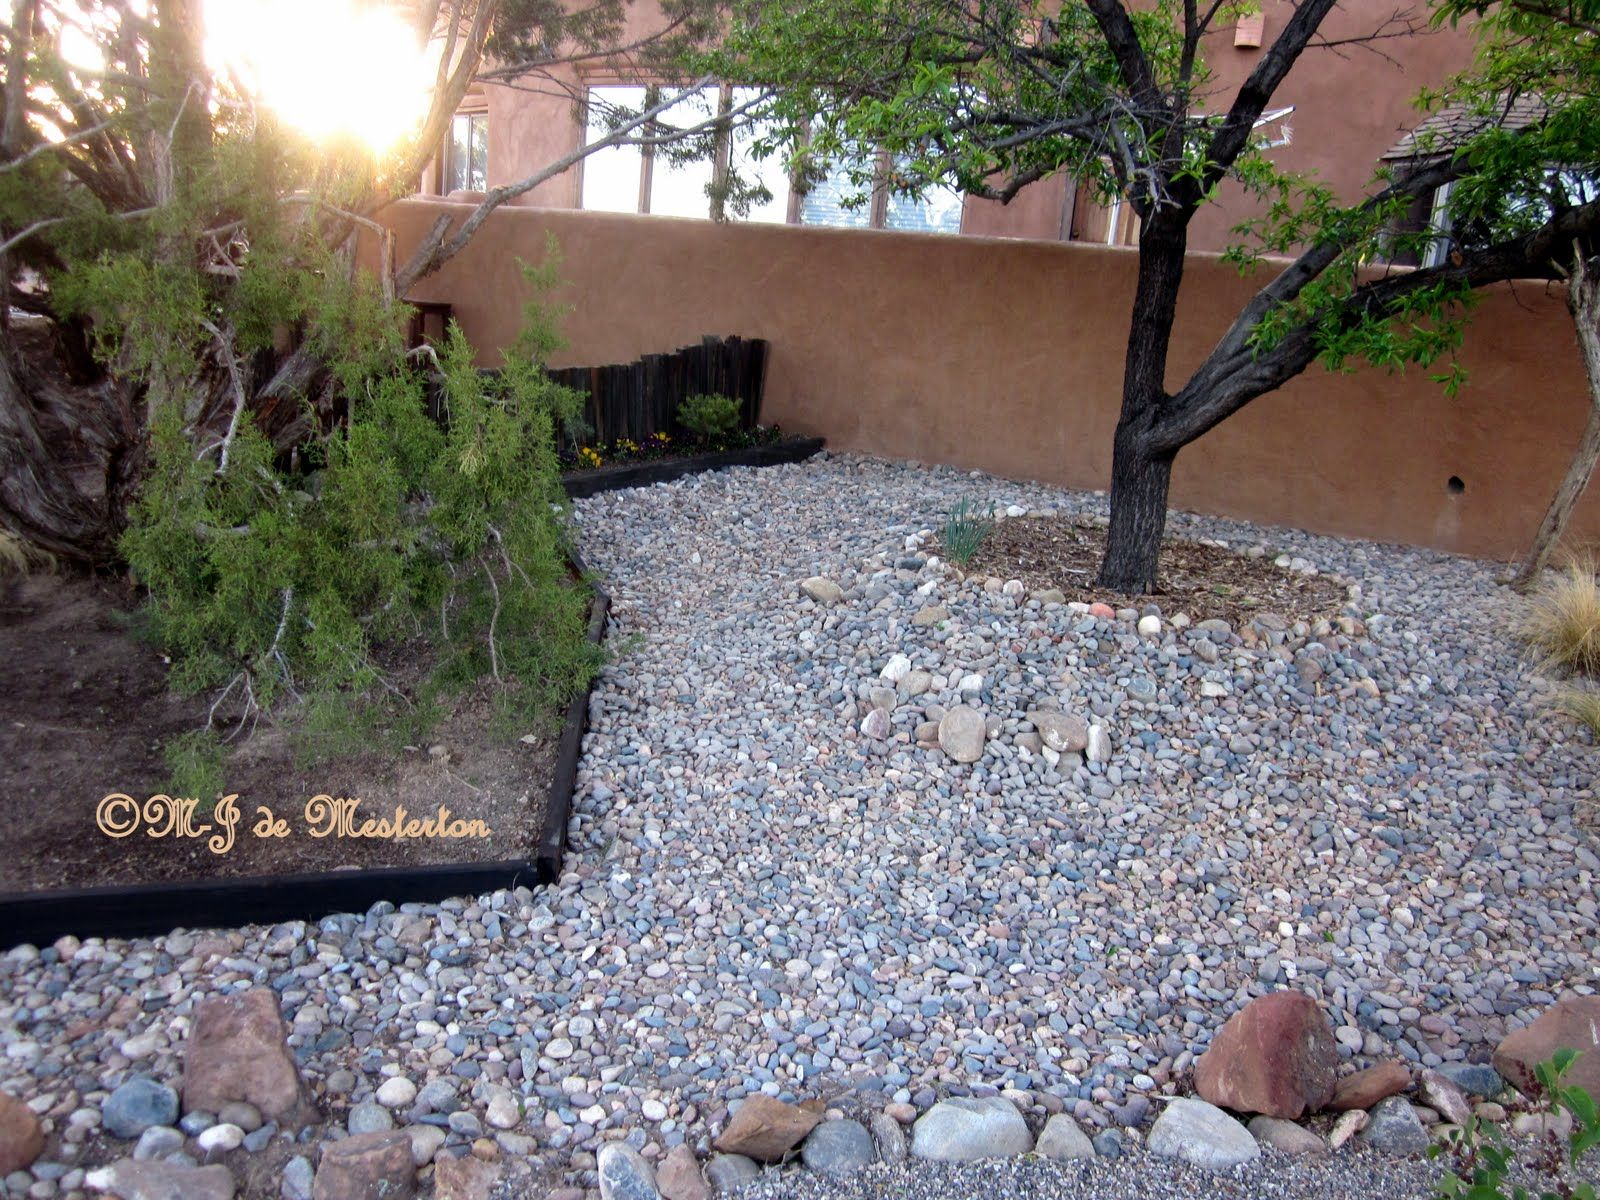 Landscaping gardening ideas gravel and grass for Landscaping rocks merced ca